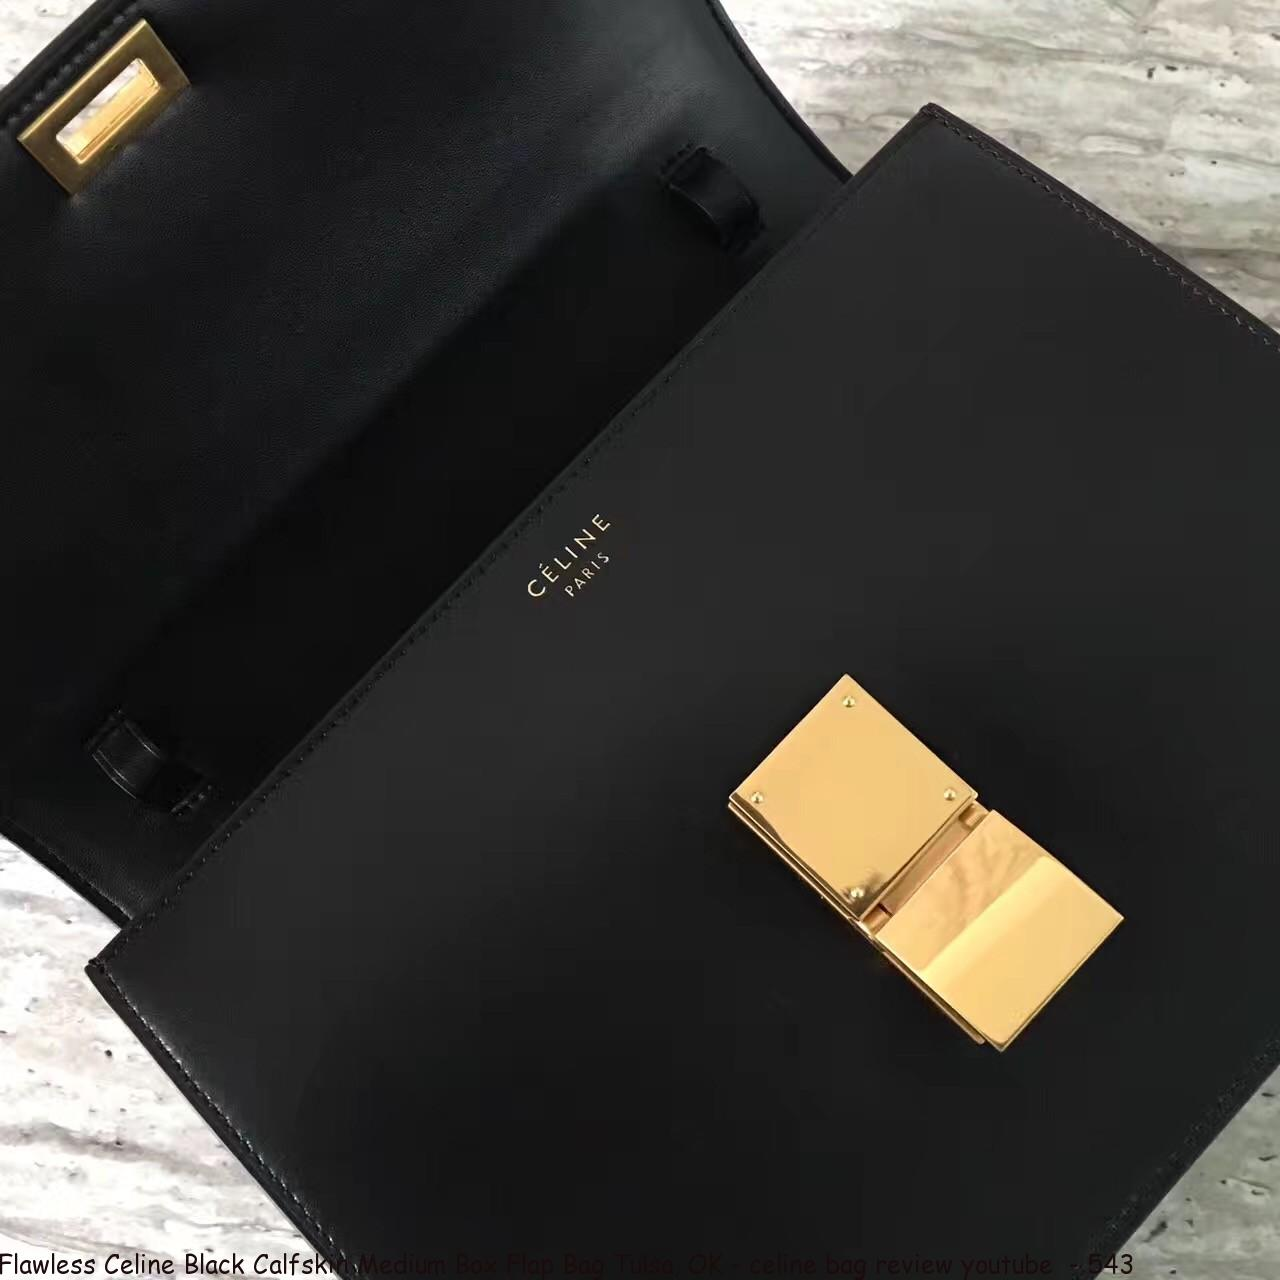 Flawless Celine Black Calfskin Medium